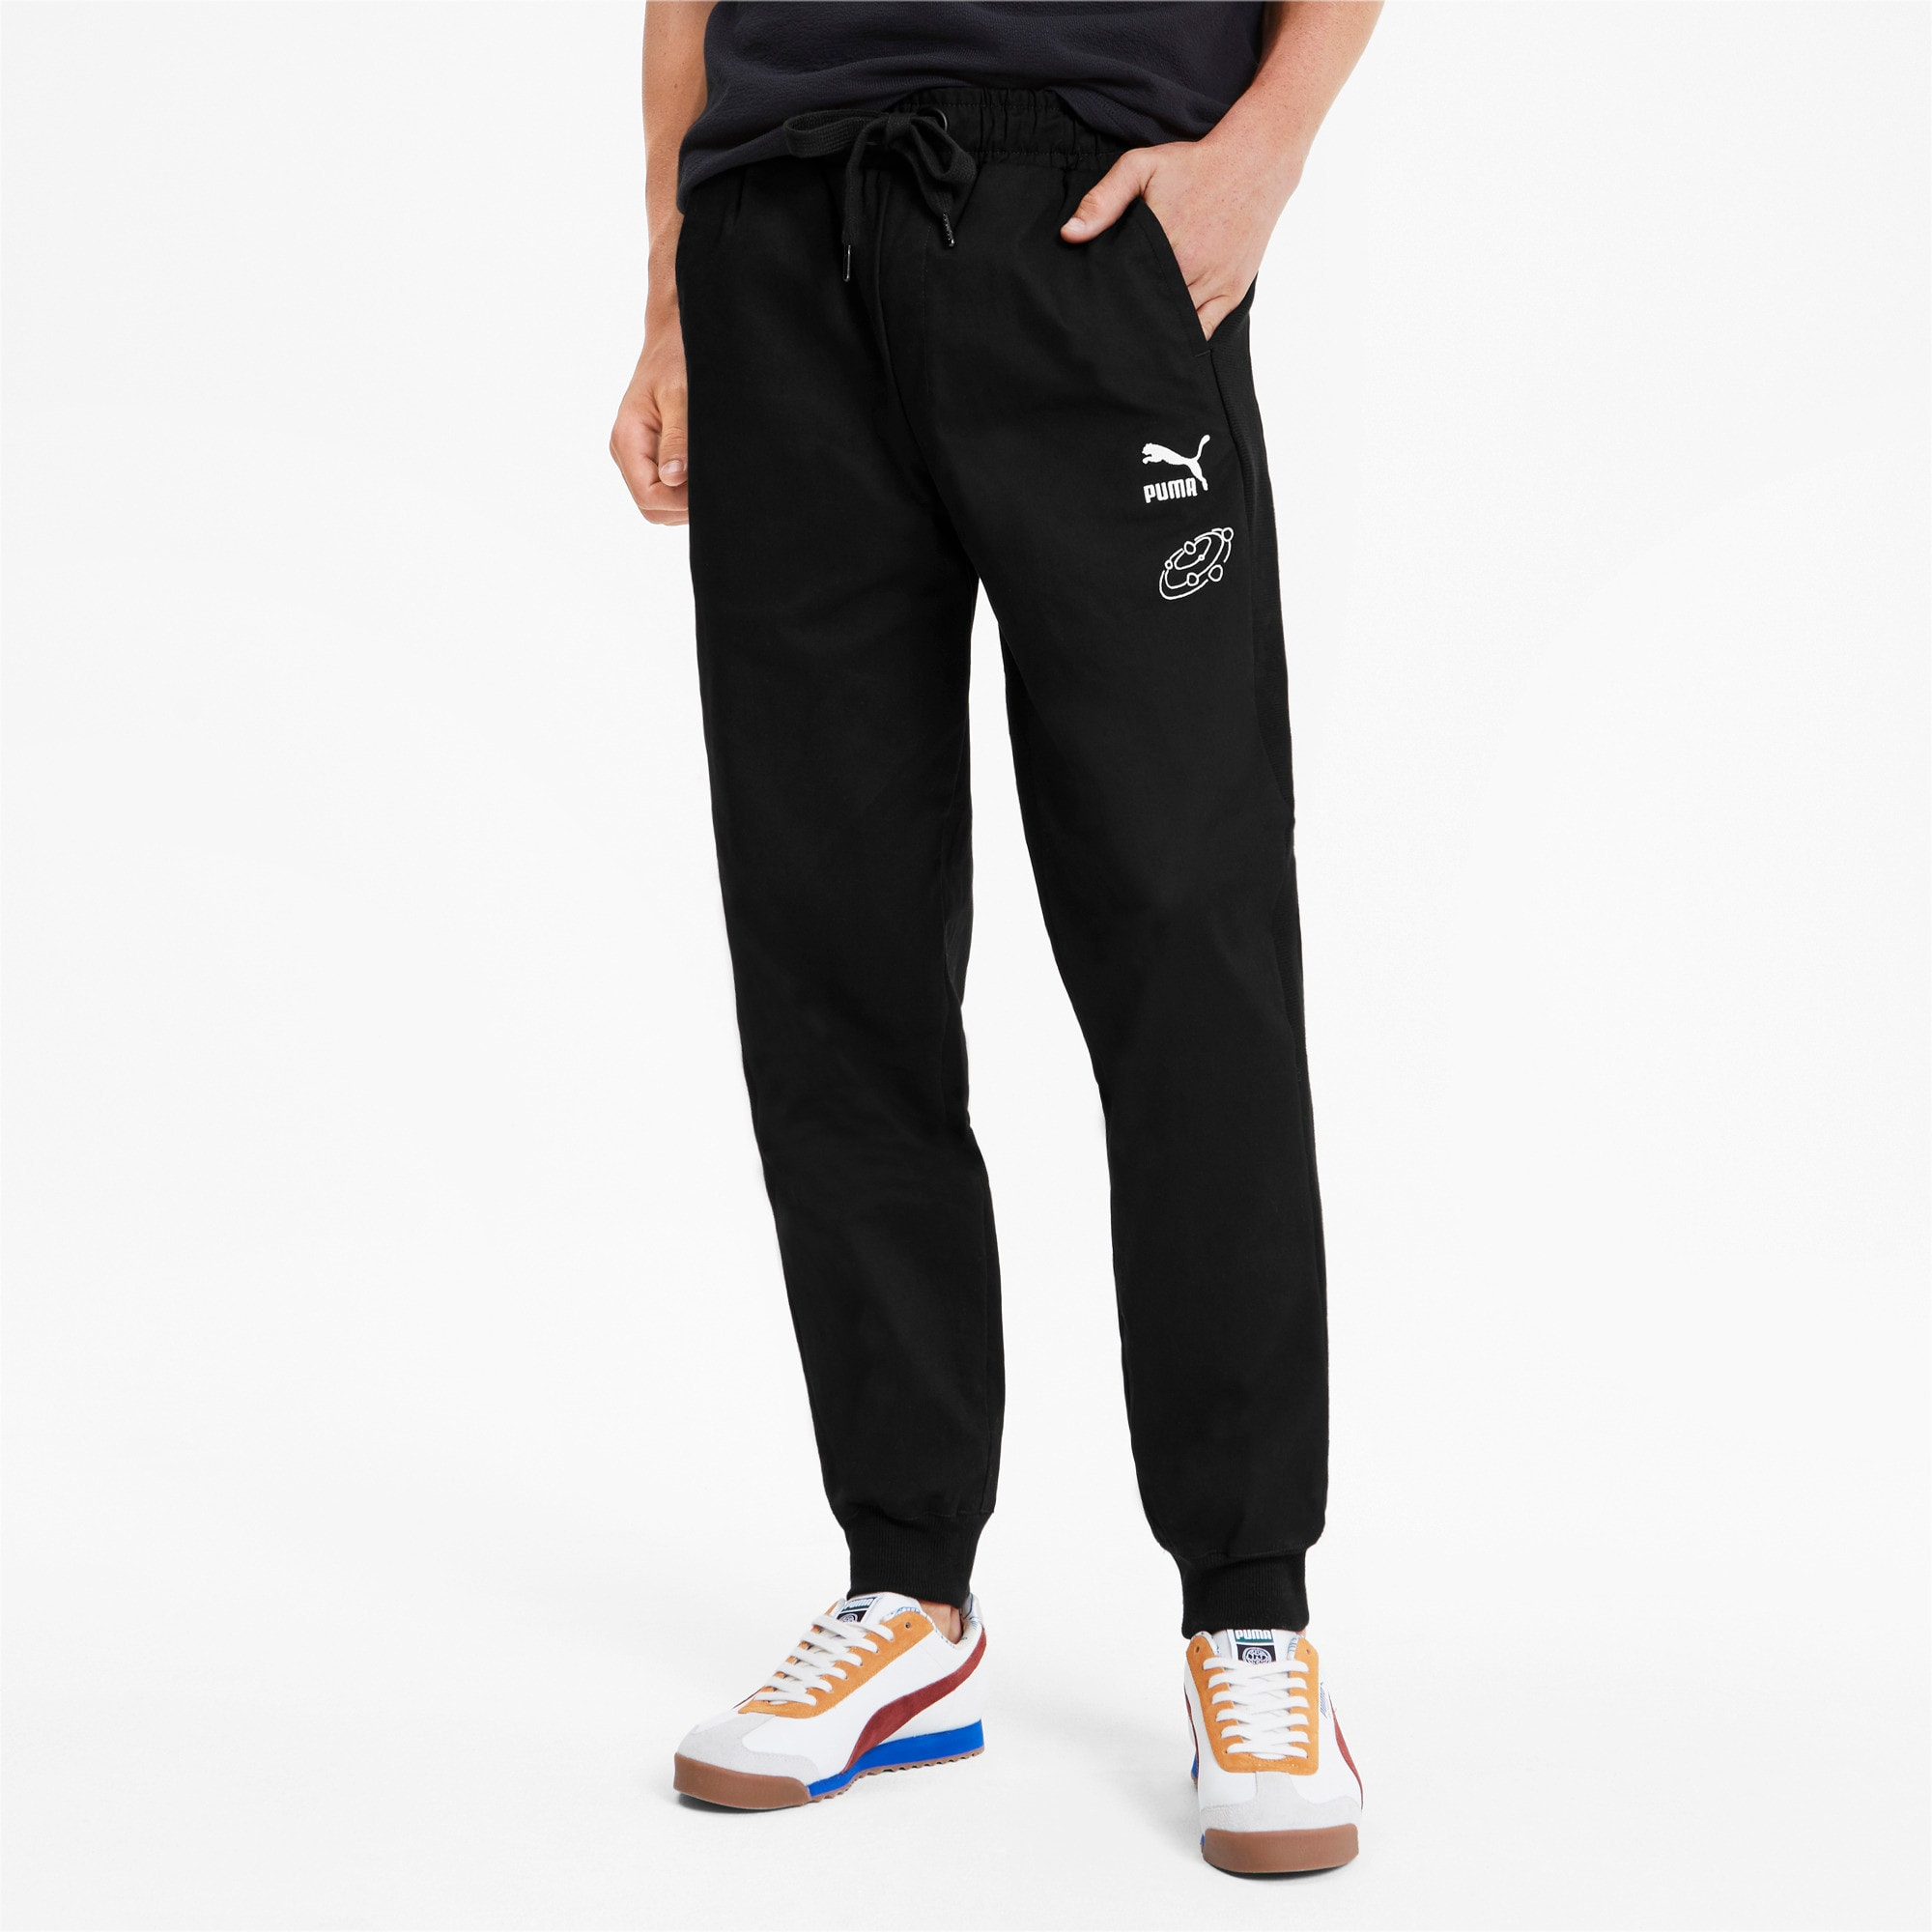 Thumbnail 2 of PUMA x TYAKASHA Herren Gewebte Hose, Cotton Black, medium